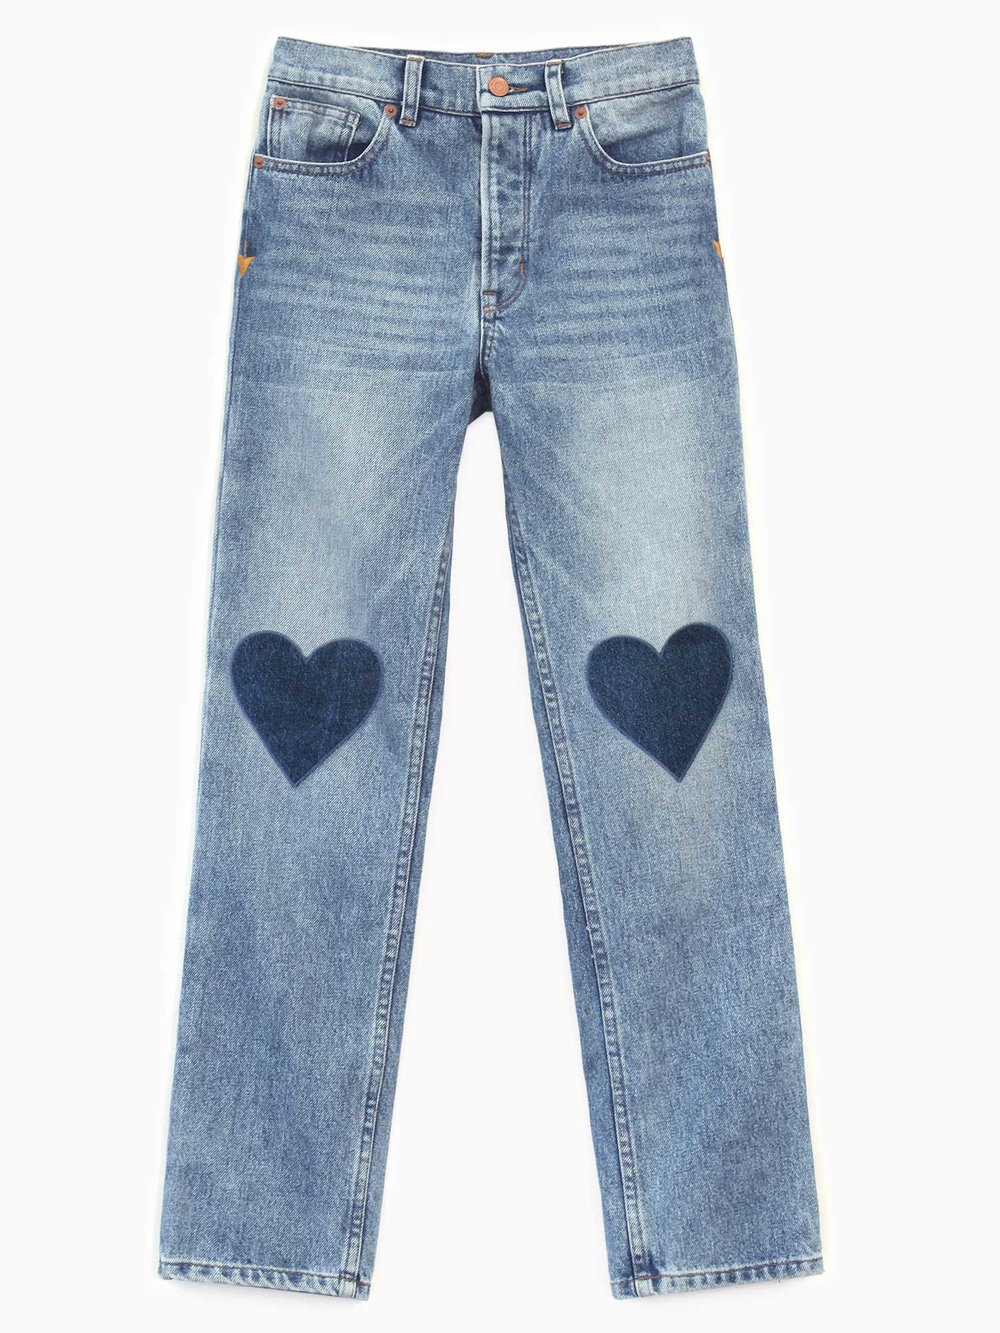 Bliss And Mischief-Love Denim in Medium Wash.jpg